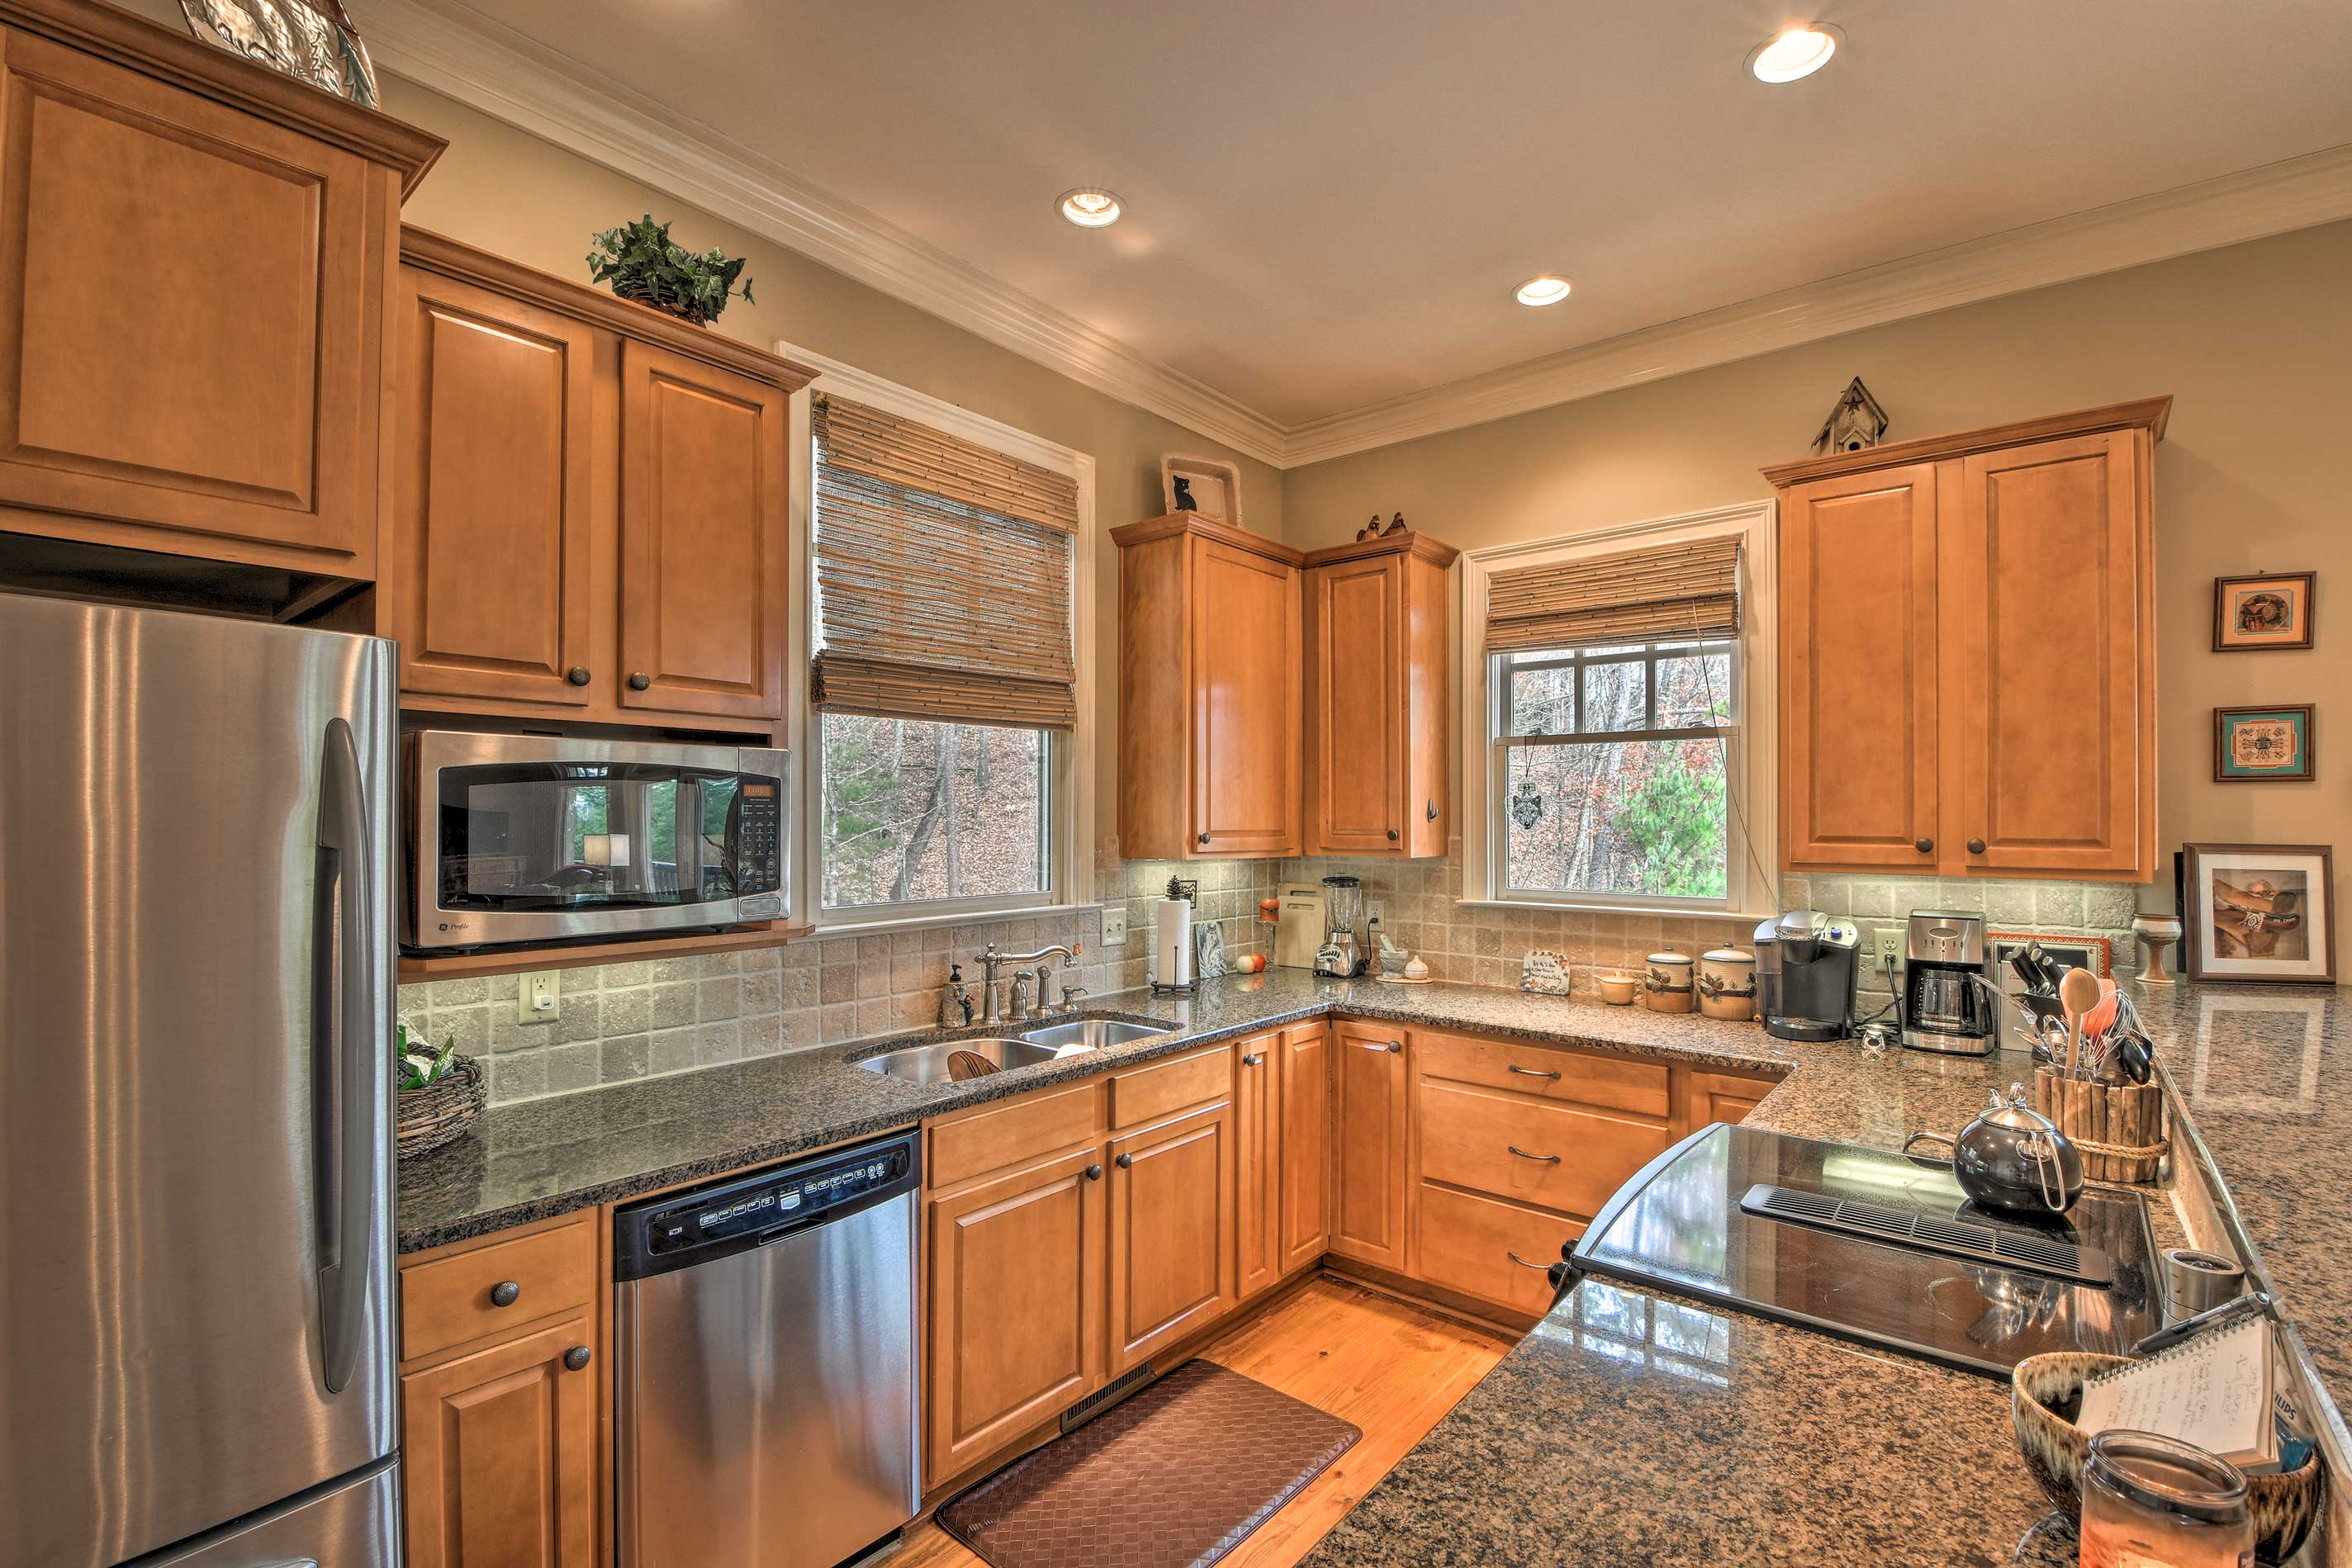 Modern appliances and granite countertops elevate this kitchen.